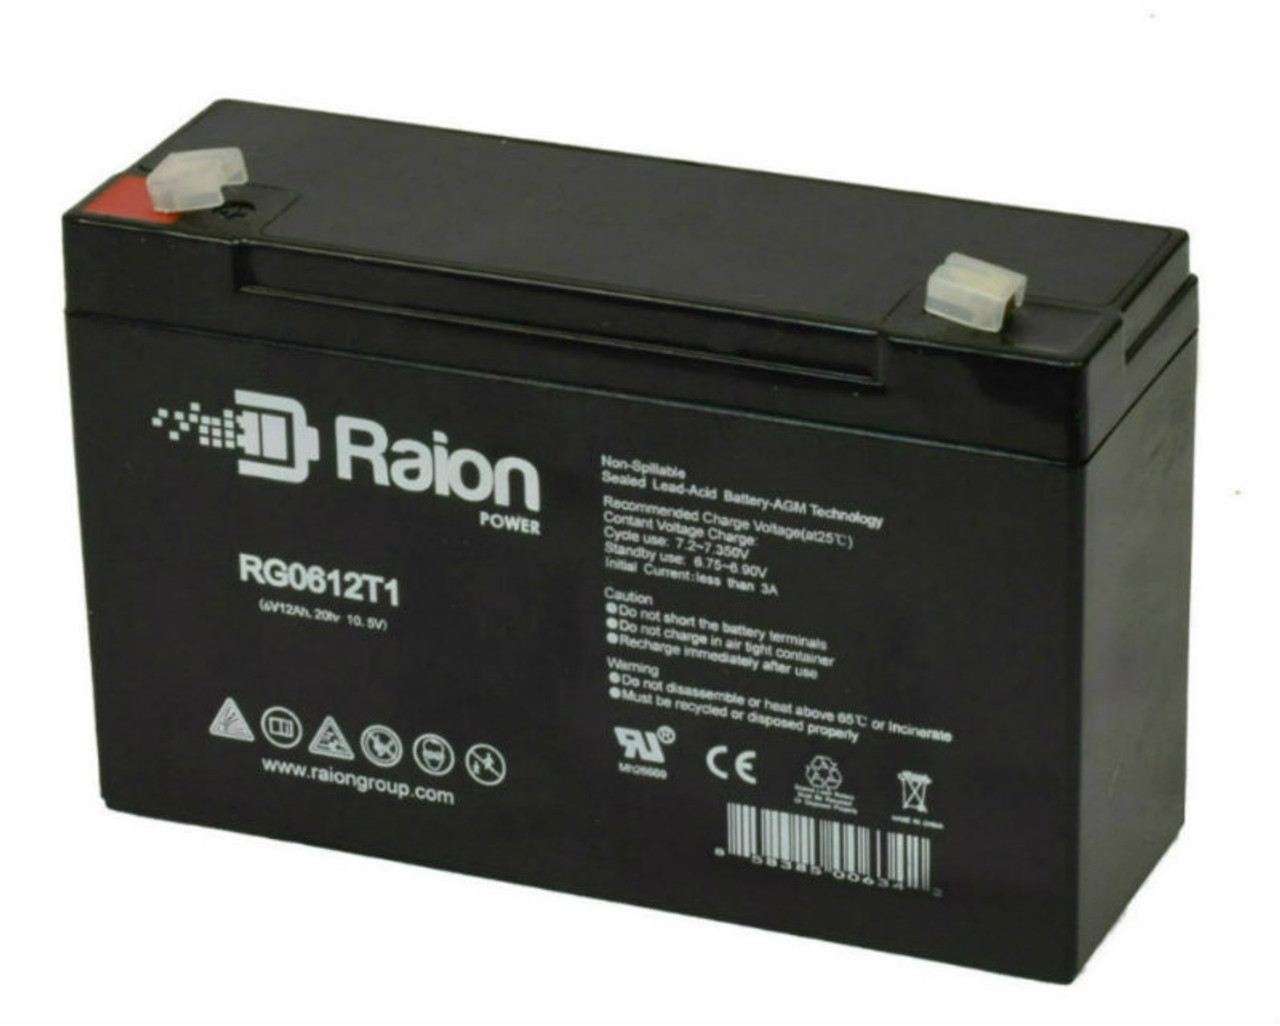 Raion Power RG06120T1 Replacement Battery Pack for Dynaray DR70714S emergency light